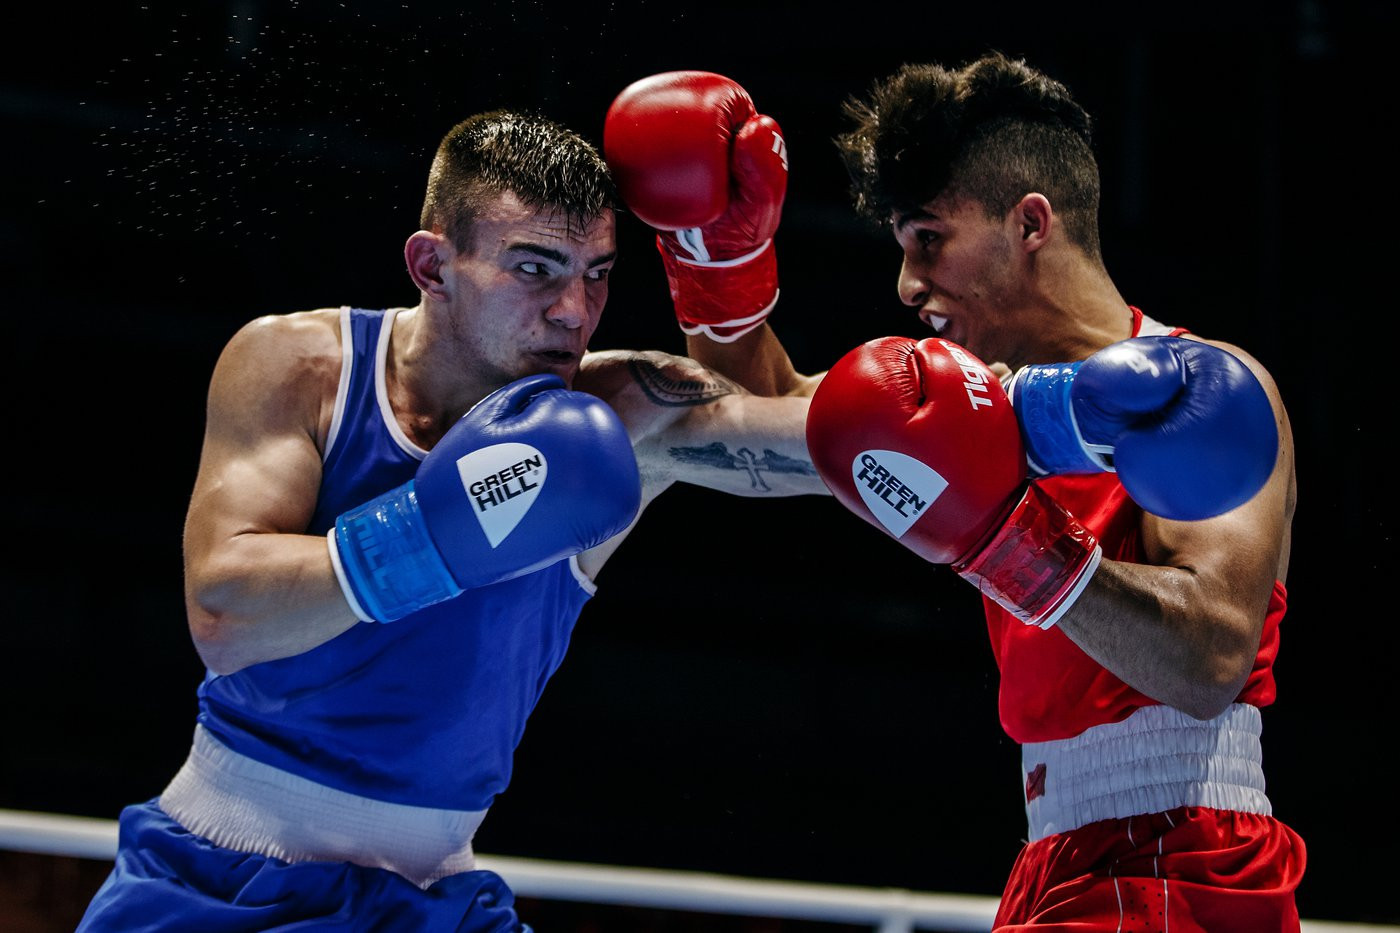 Sensory technology makes debut at AIBA Men's World Championships